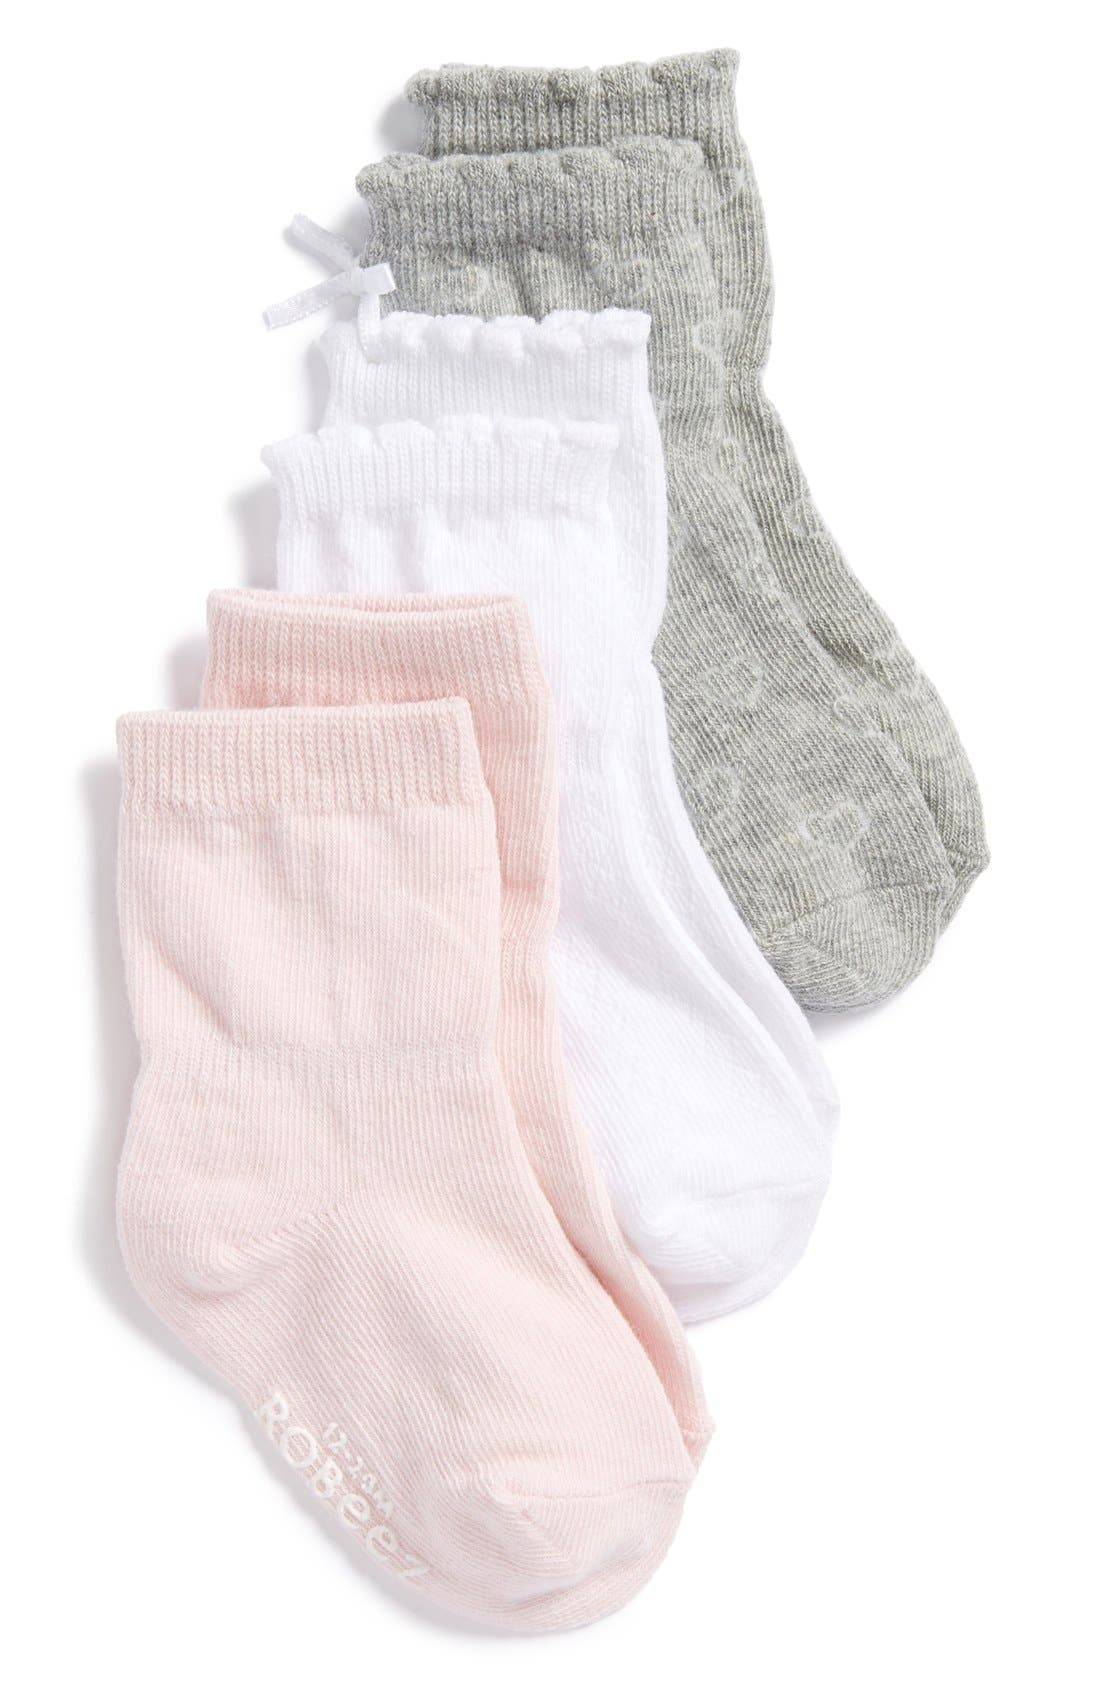 Kickproof Ankle Socks,                             Main thumbnail 1, color,                             Pink